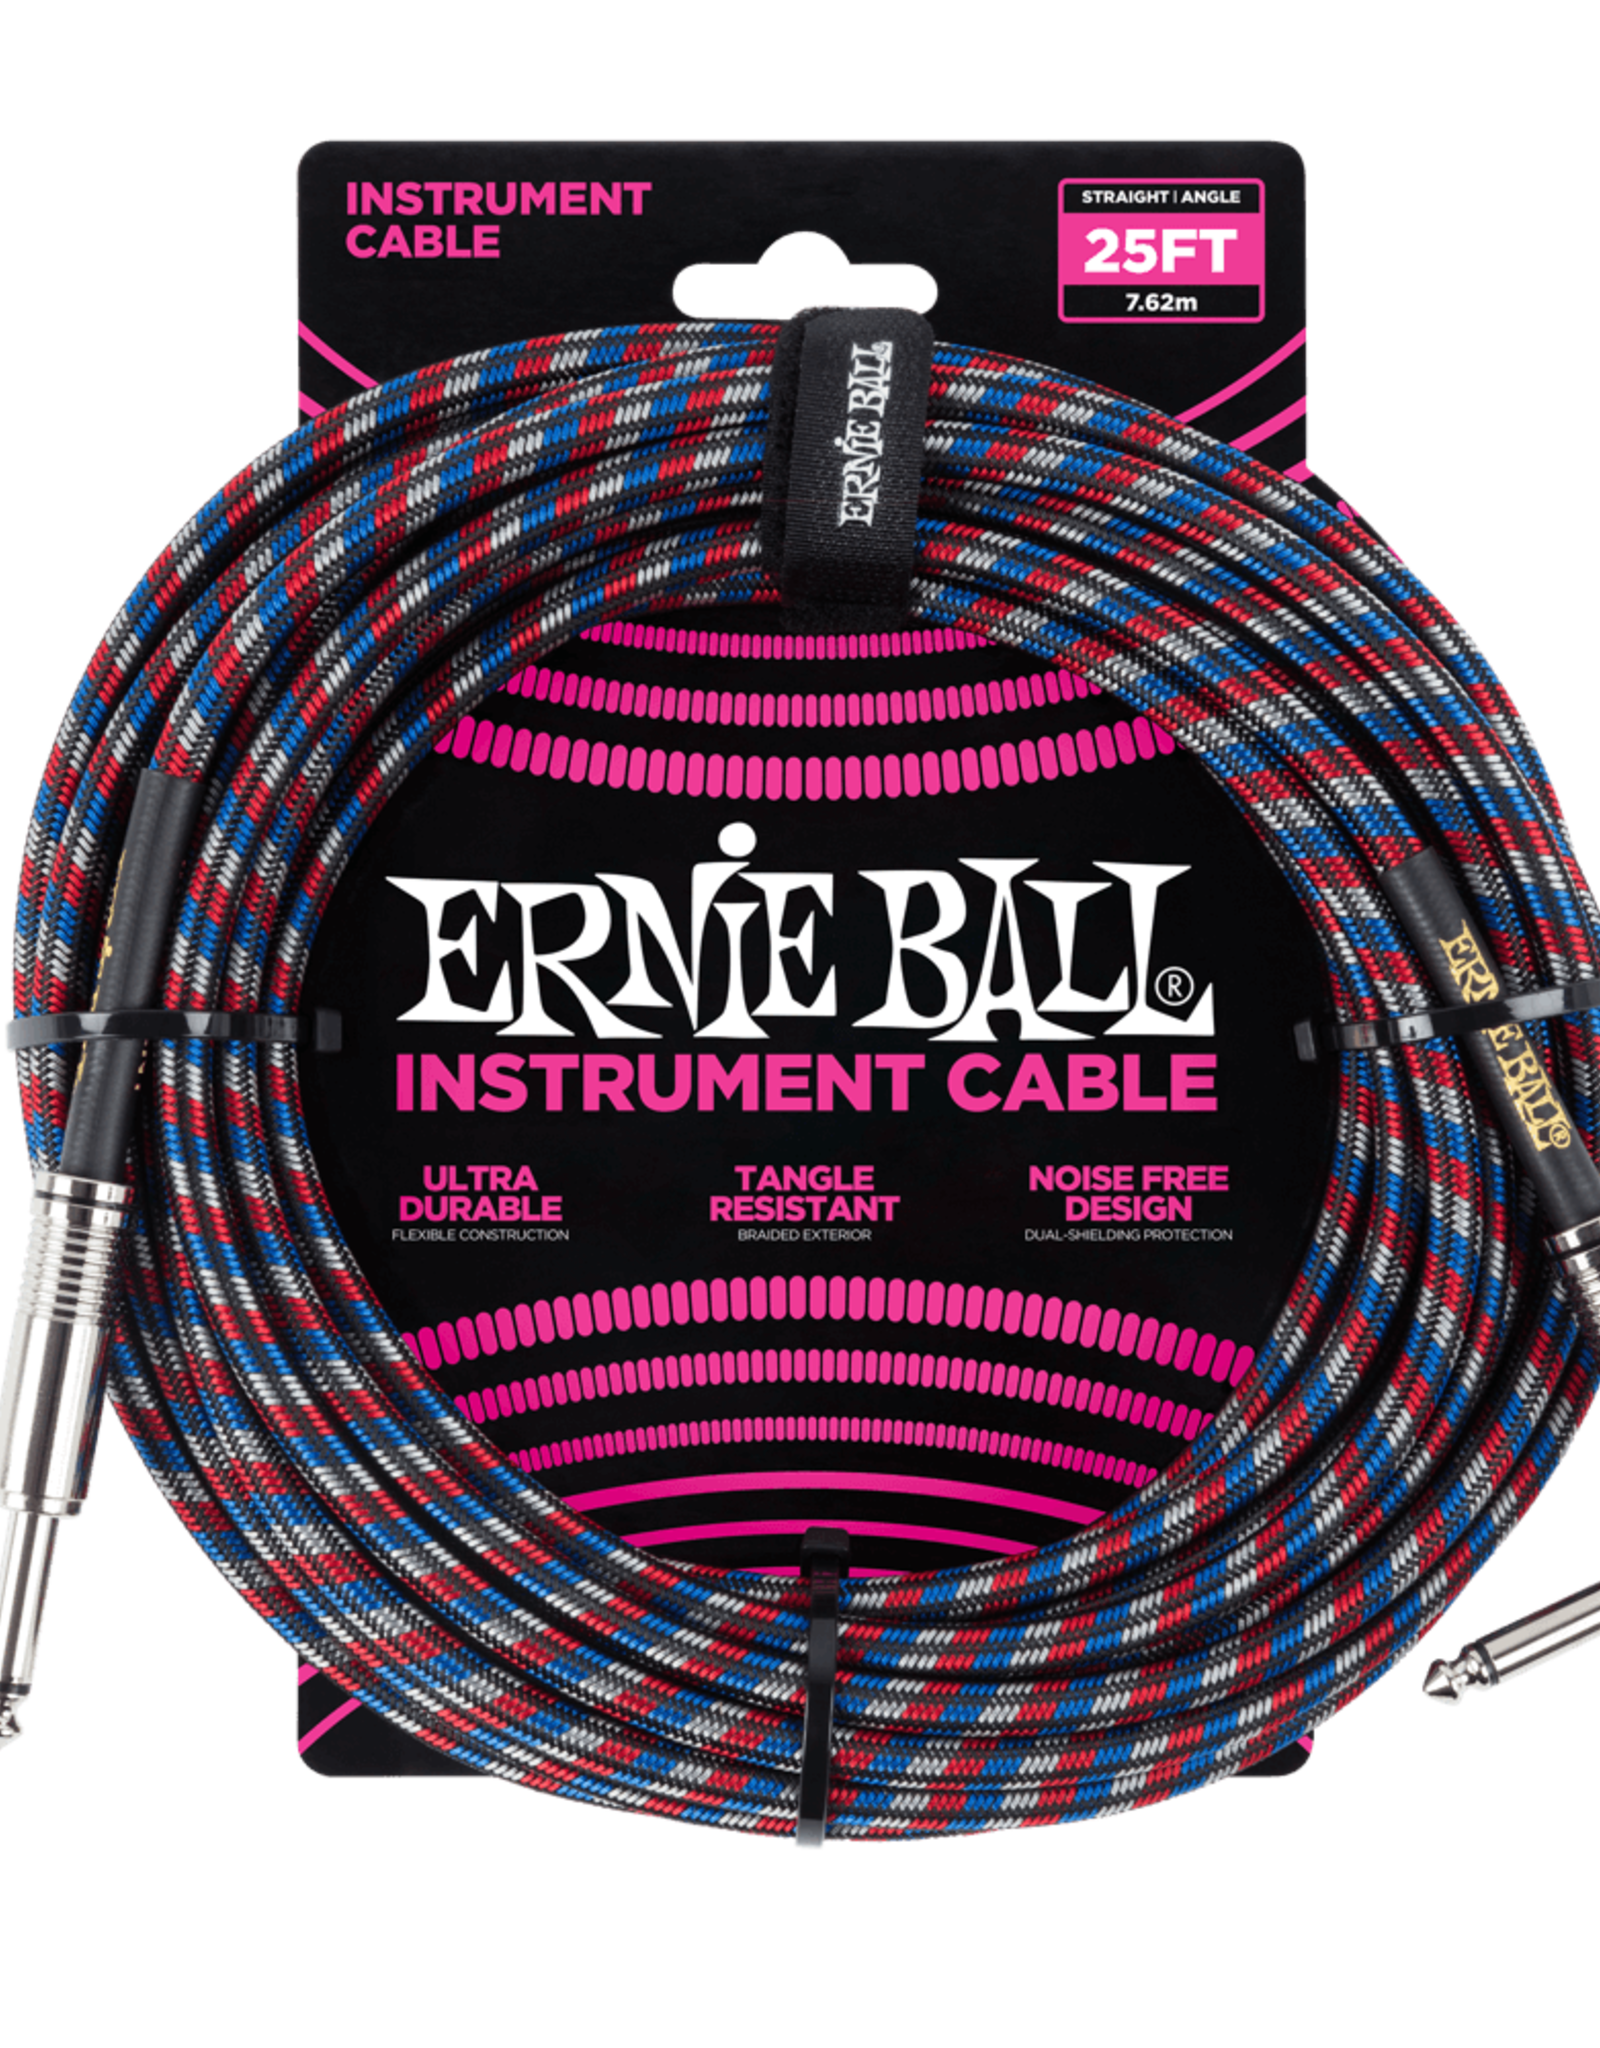 Ernie Ball Ernie Ball 25' Braided Instrument Cable - Red, White, and Blue